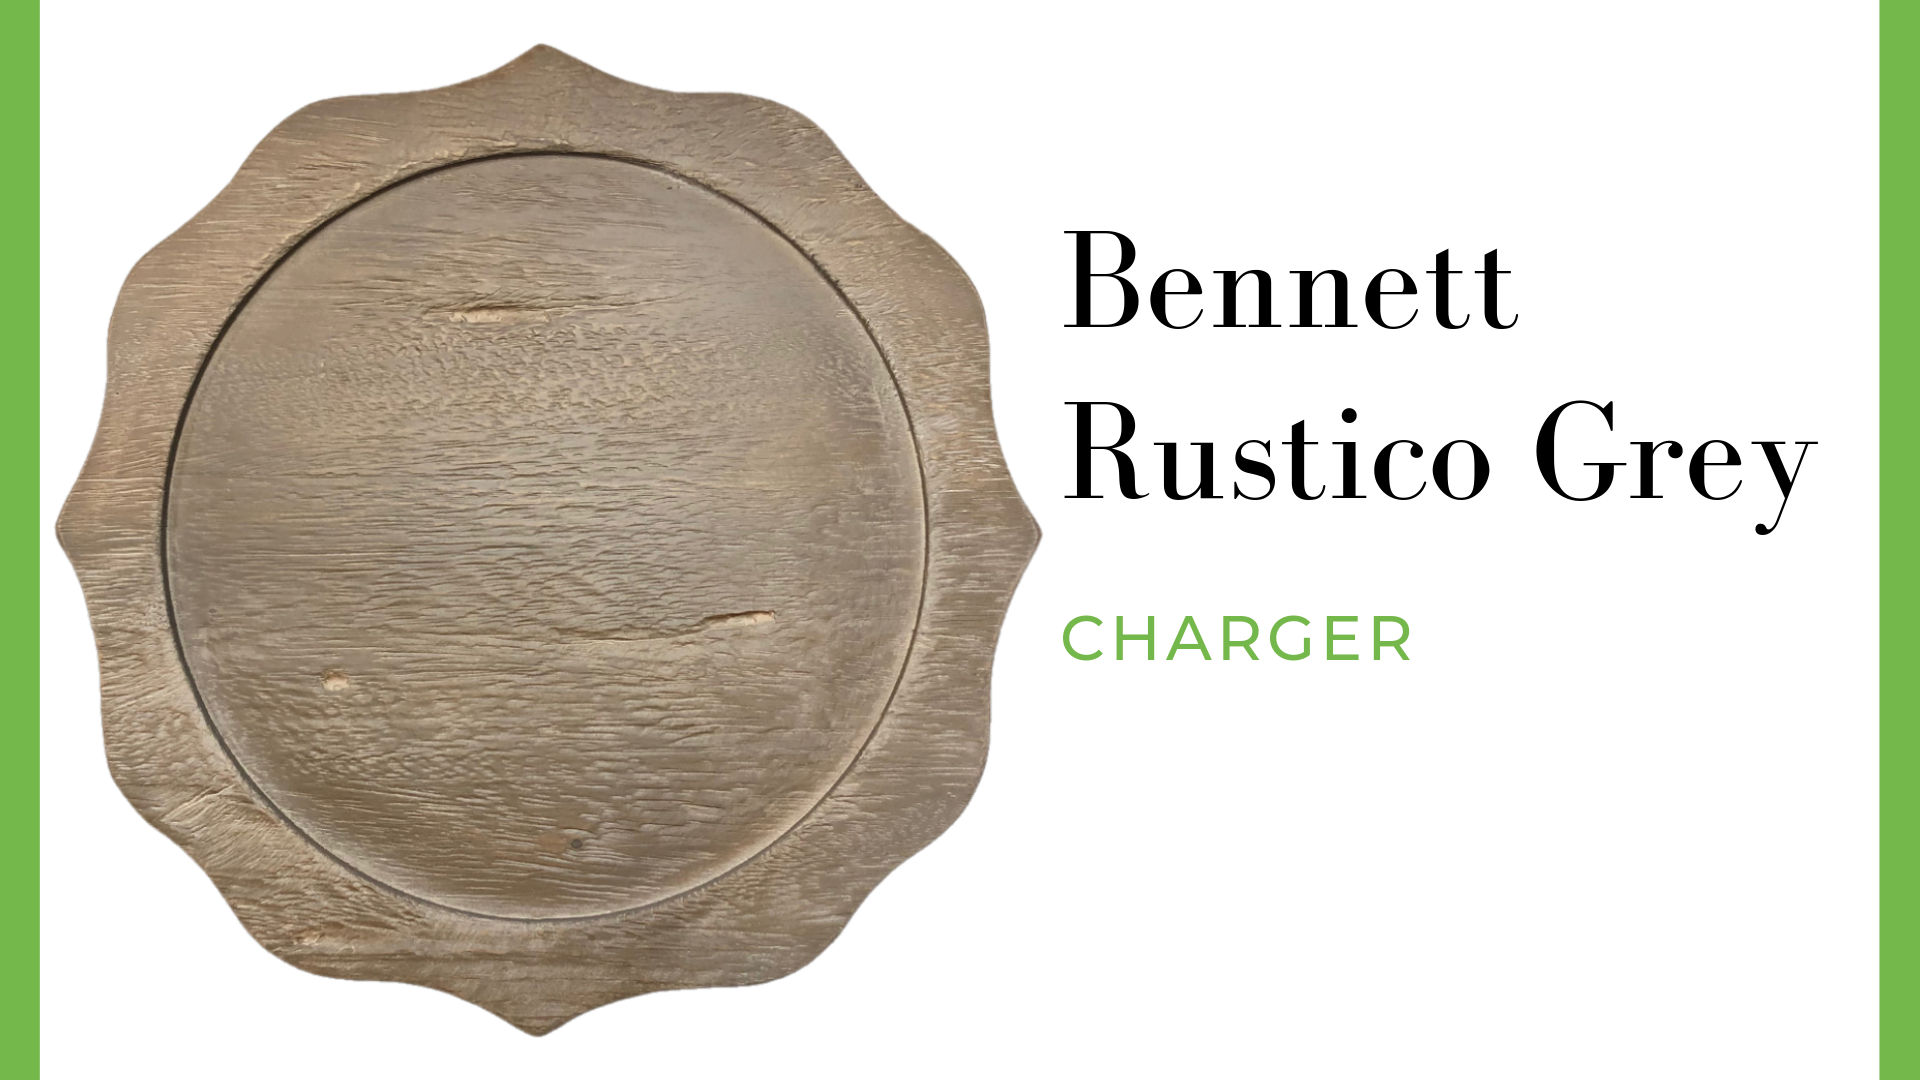 Bennett Rustico Grey Charger